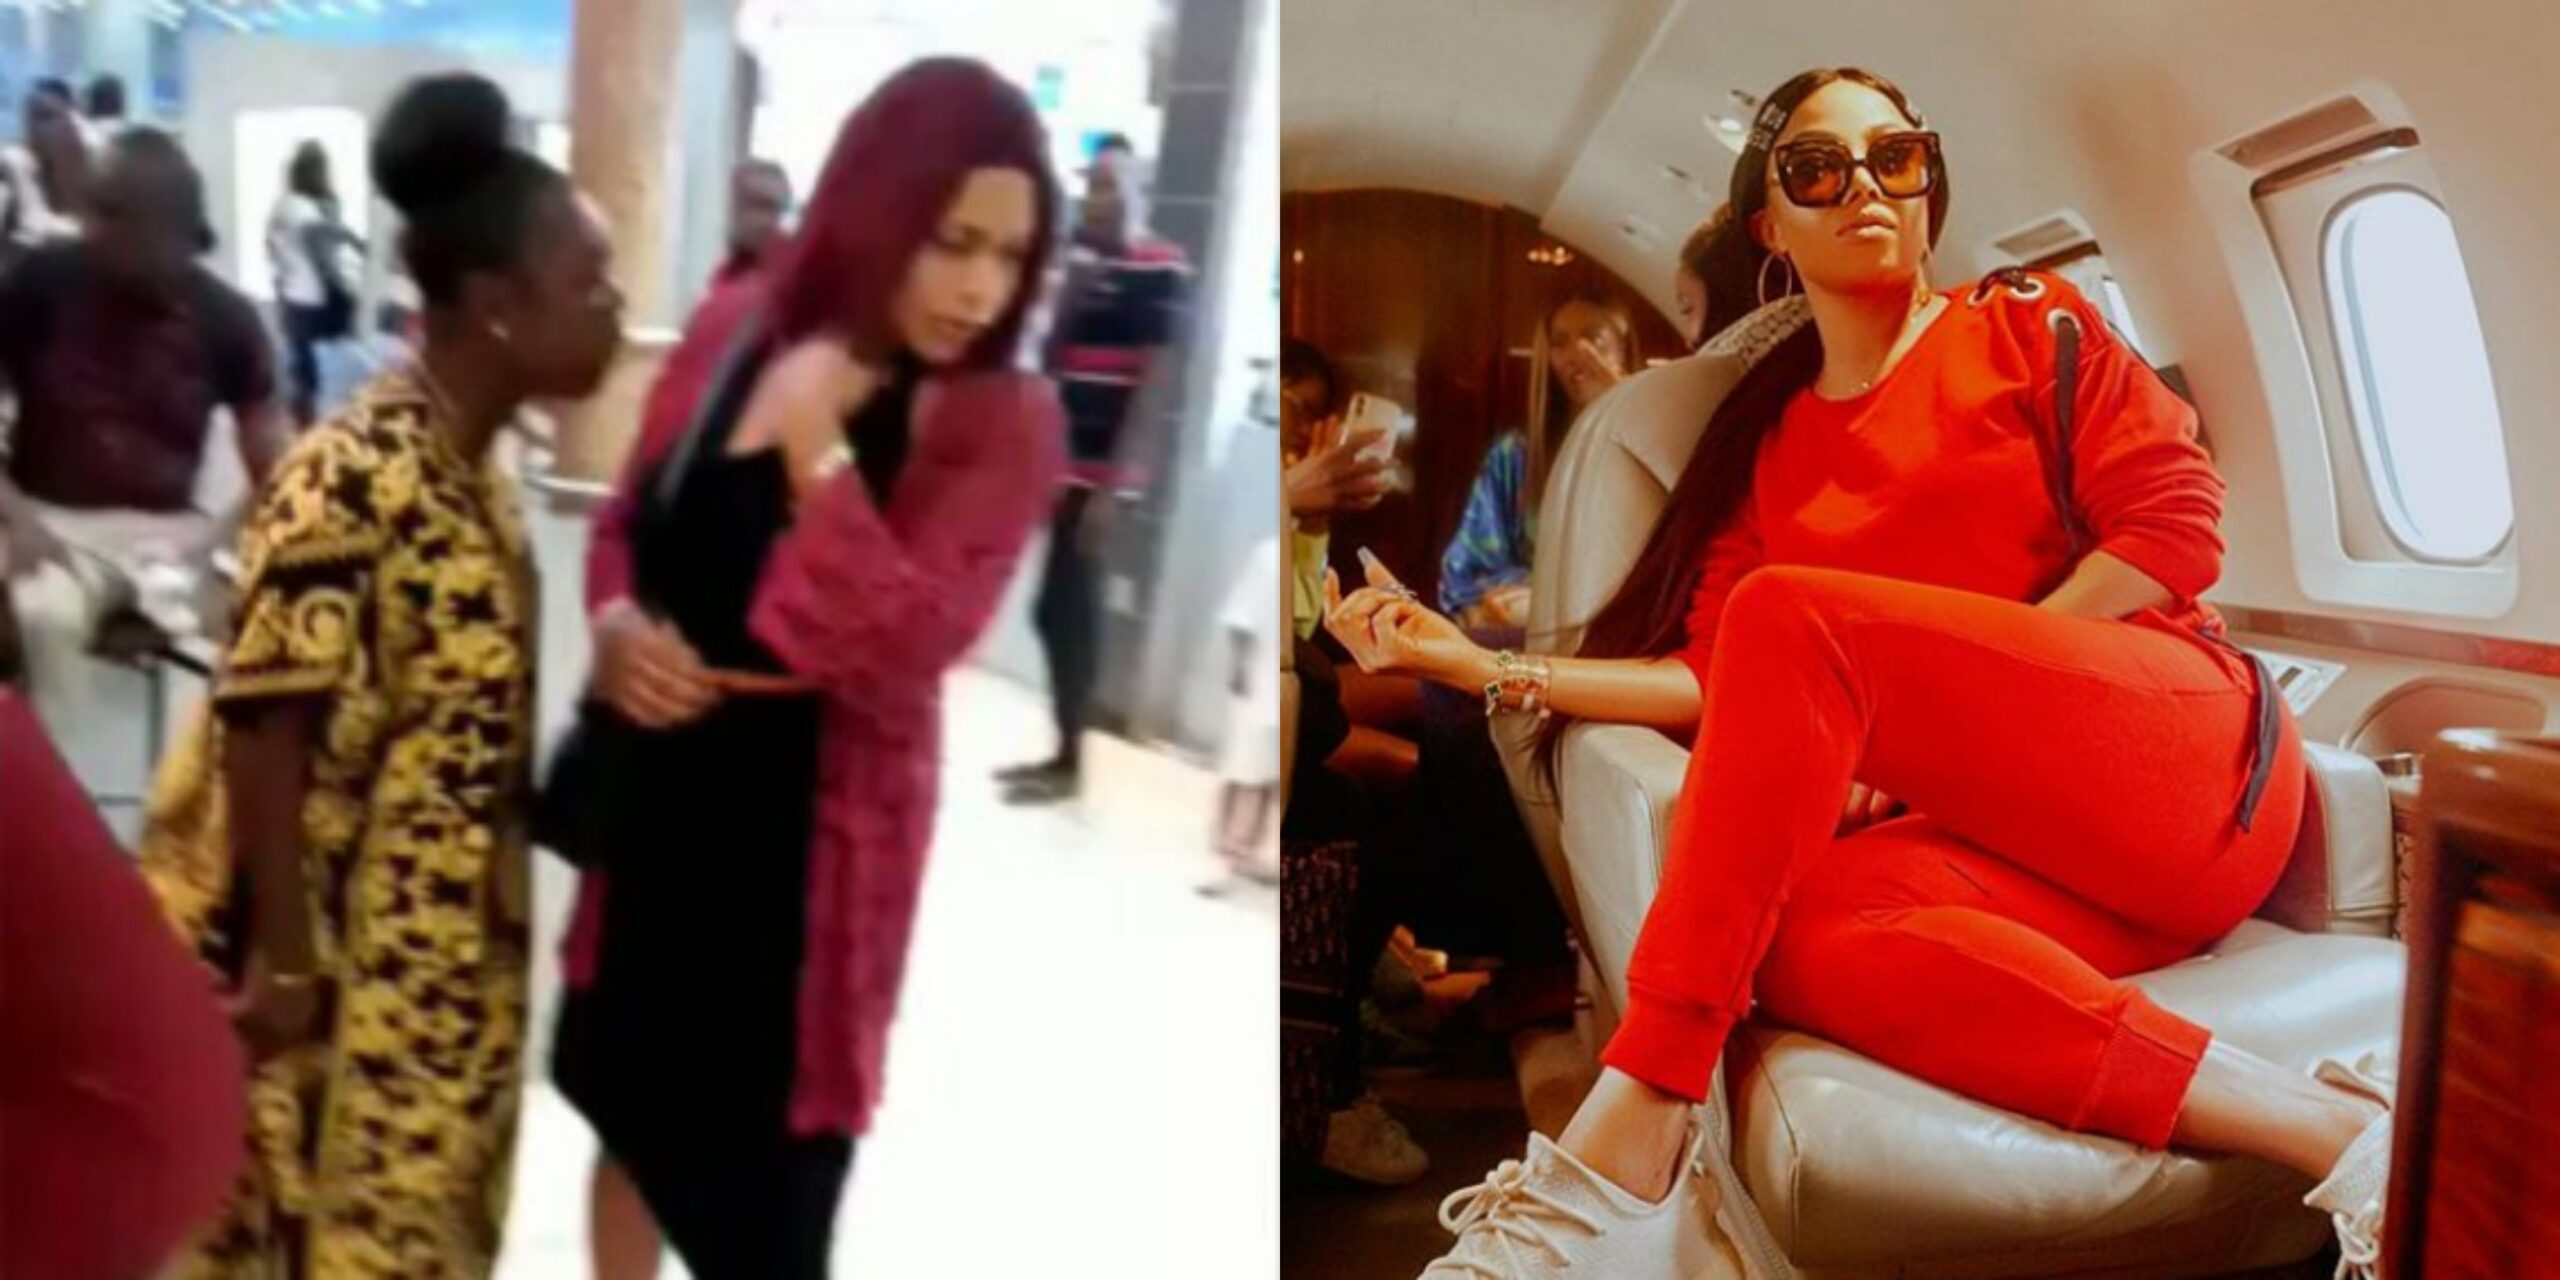 Toke Makinwa reacts to viral video of married woman assaulting her husband's mistress in Ikeja mall